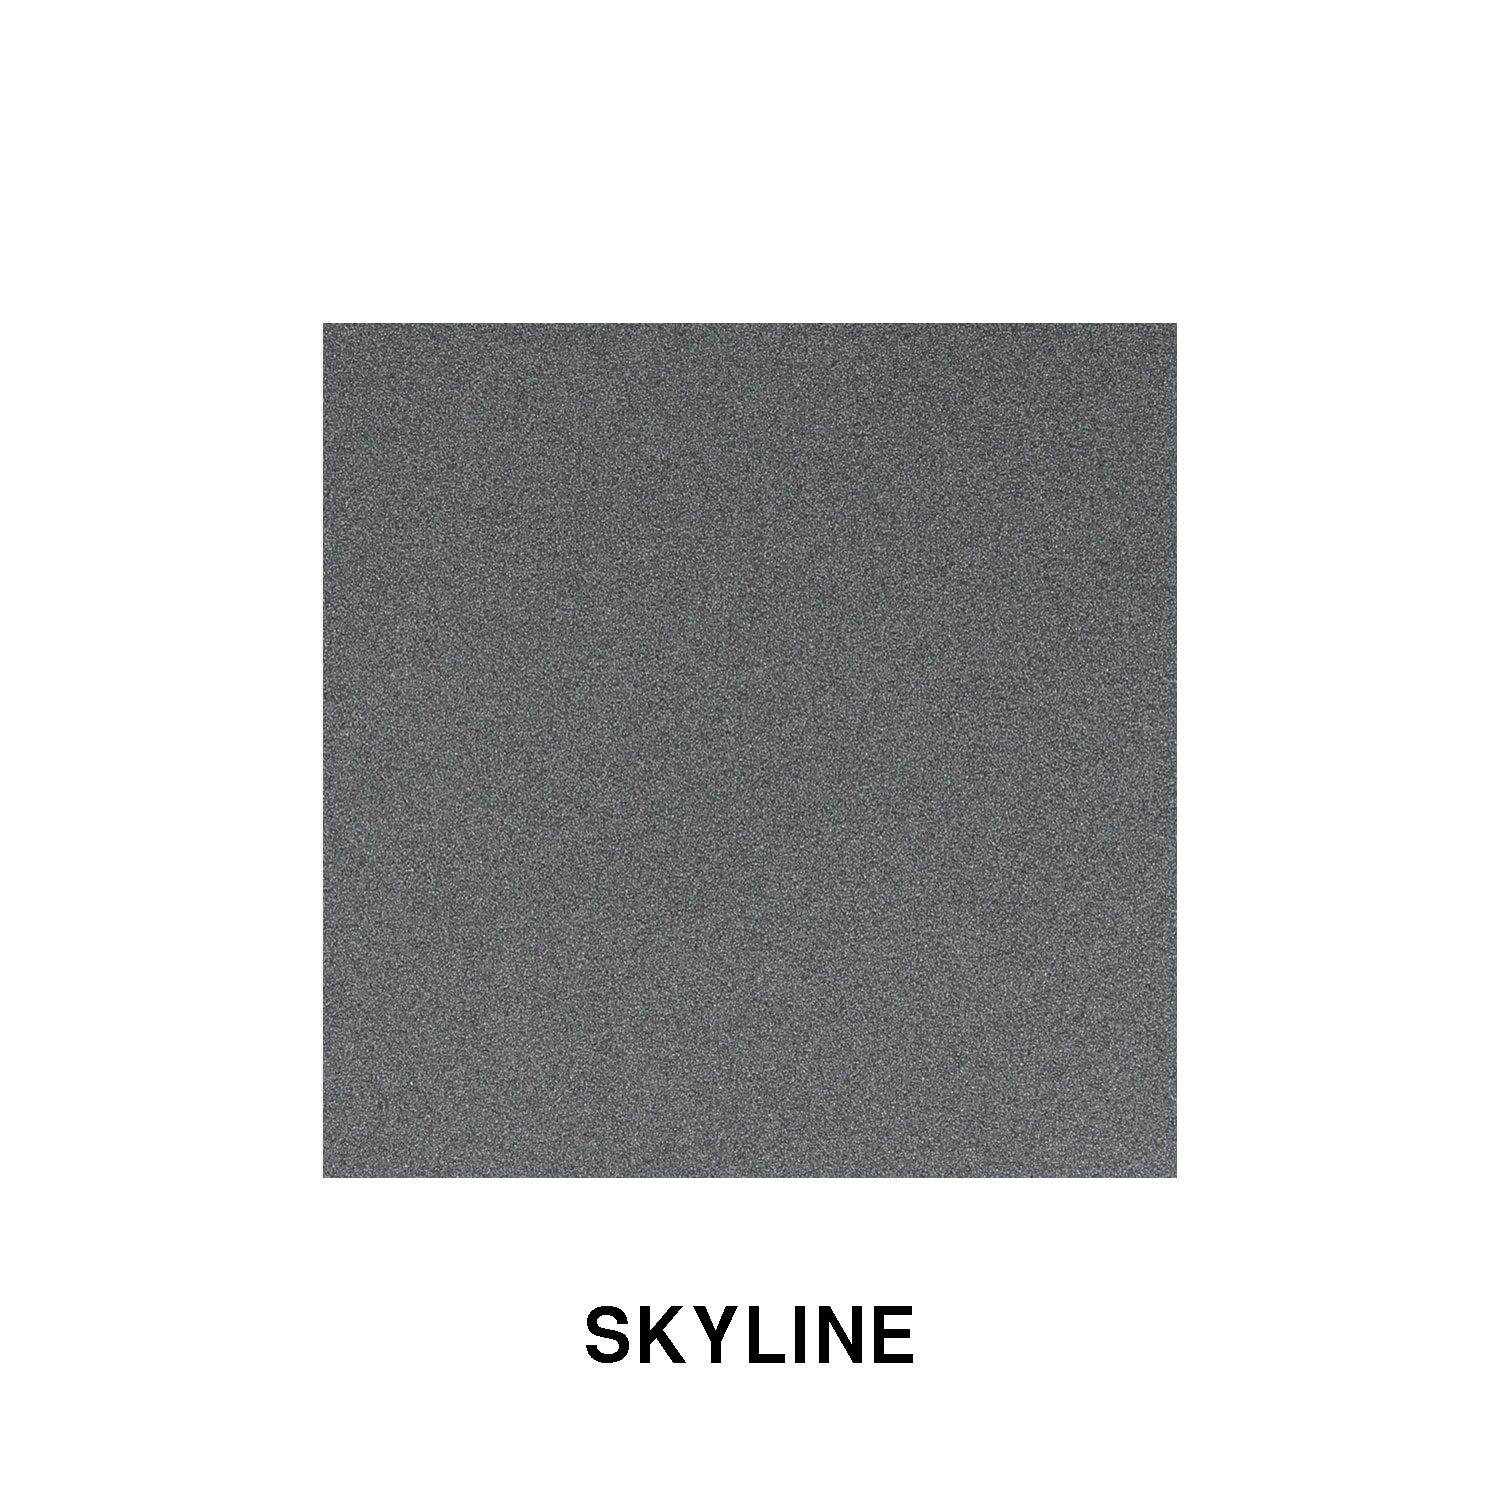 Skyline Fiberglass Finish